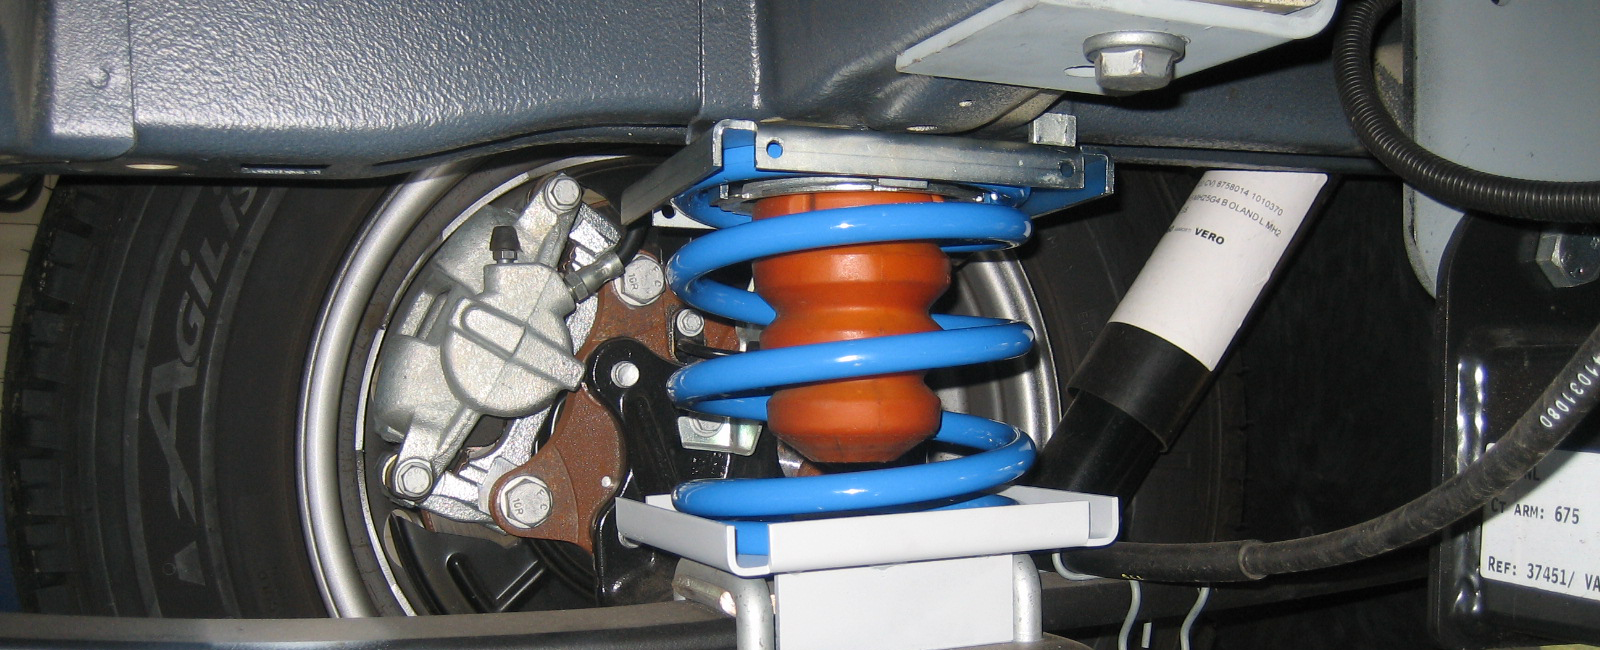 Mad Air Suspension and Springs